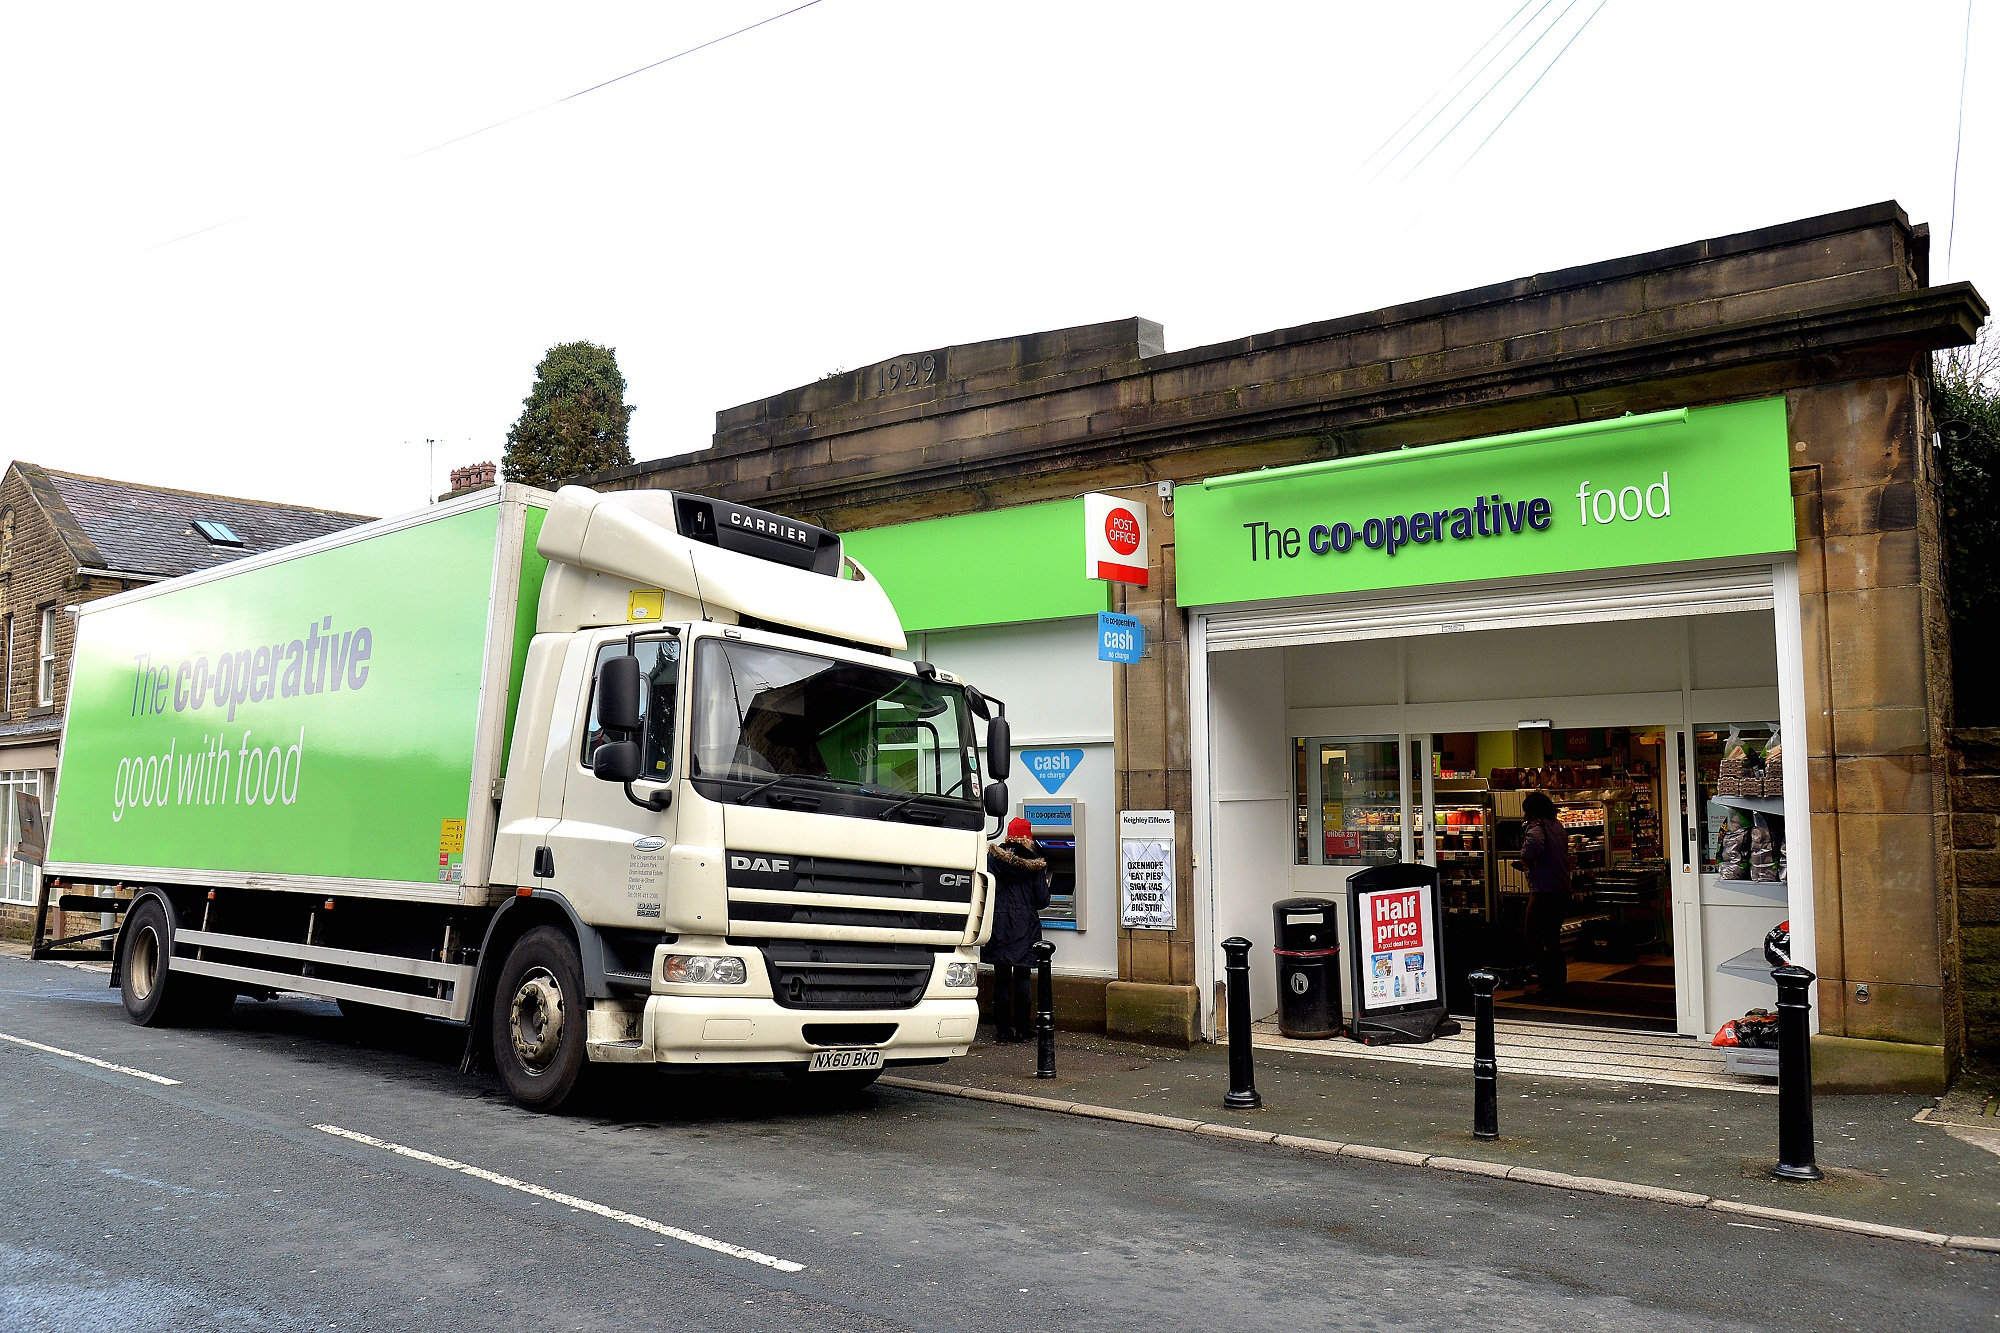 The Co-op store in Oxenhope was one of the ones targeted